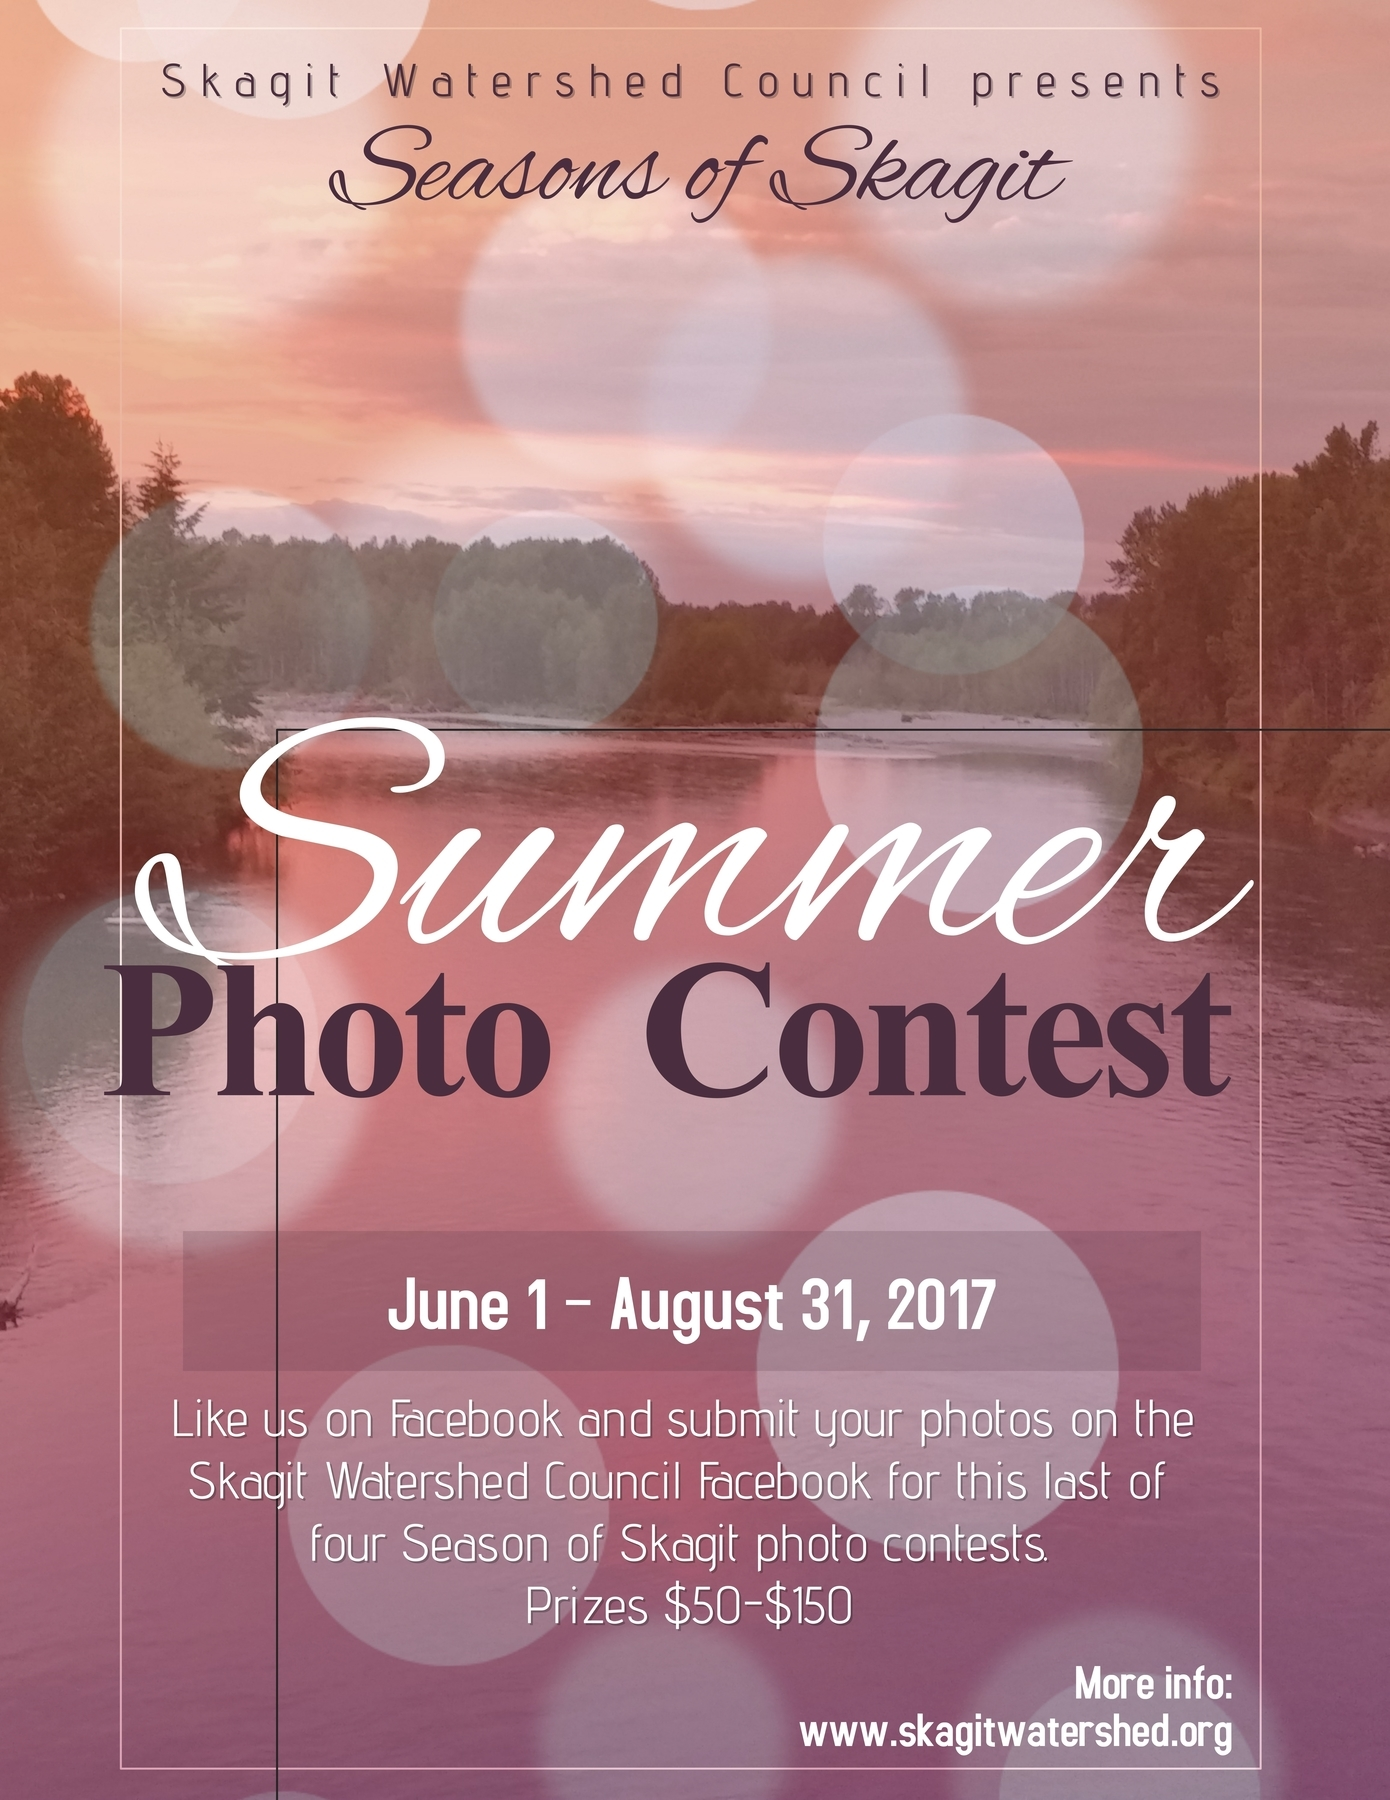 Summer Photo Contest Flyer - for social media